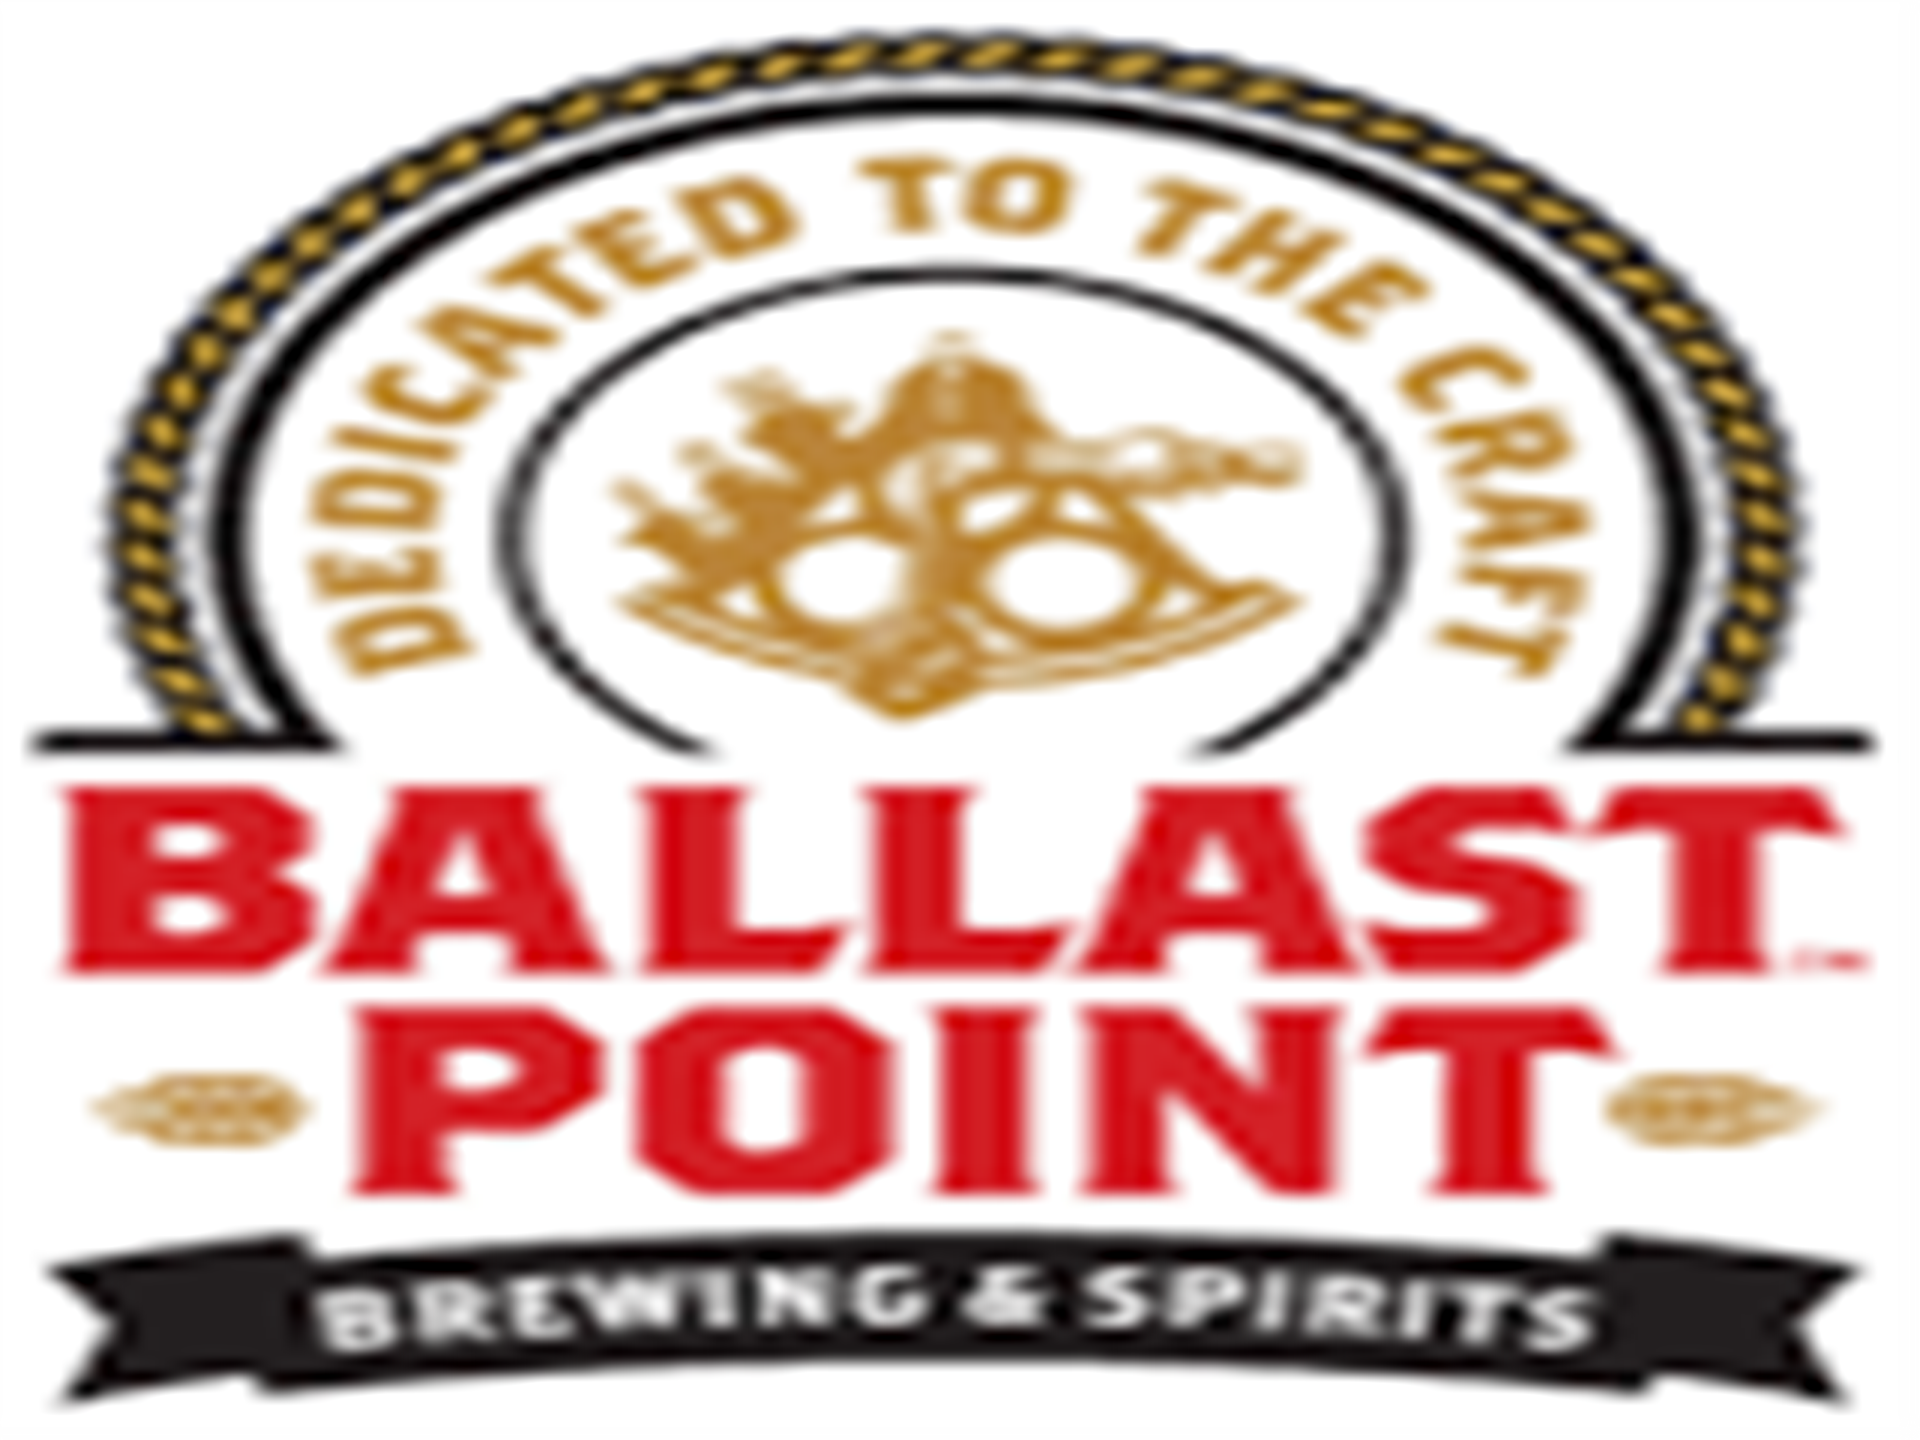 Dedicated to the craft Ballast Point Brewing & Spirits